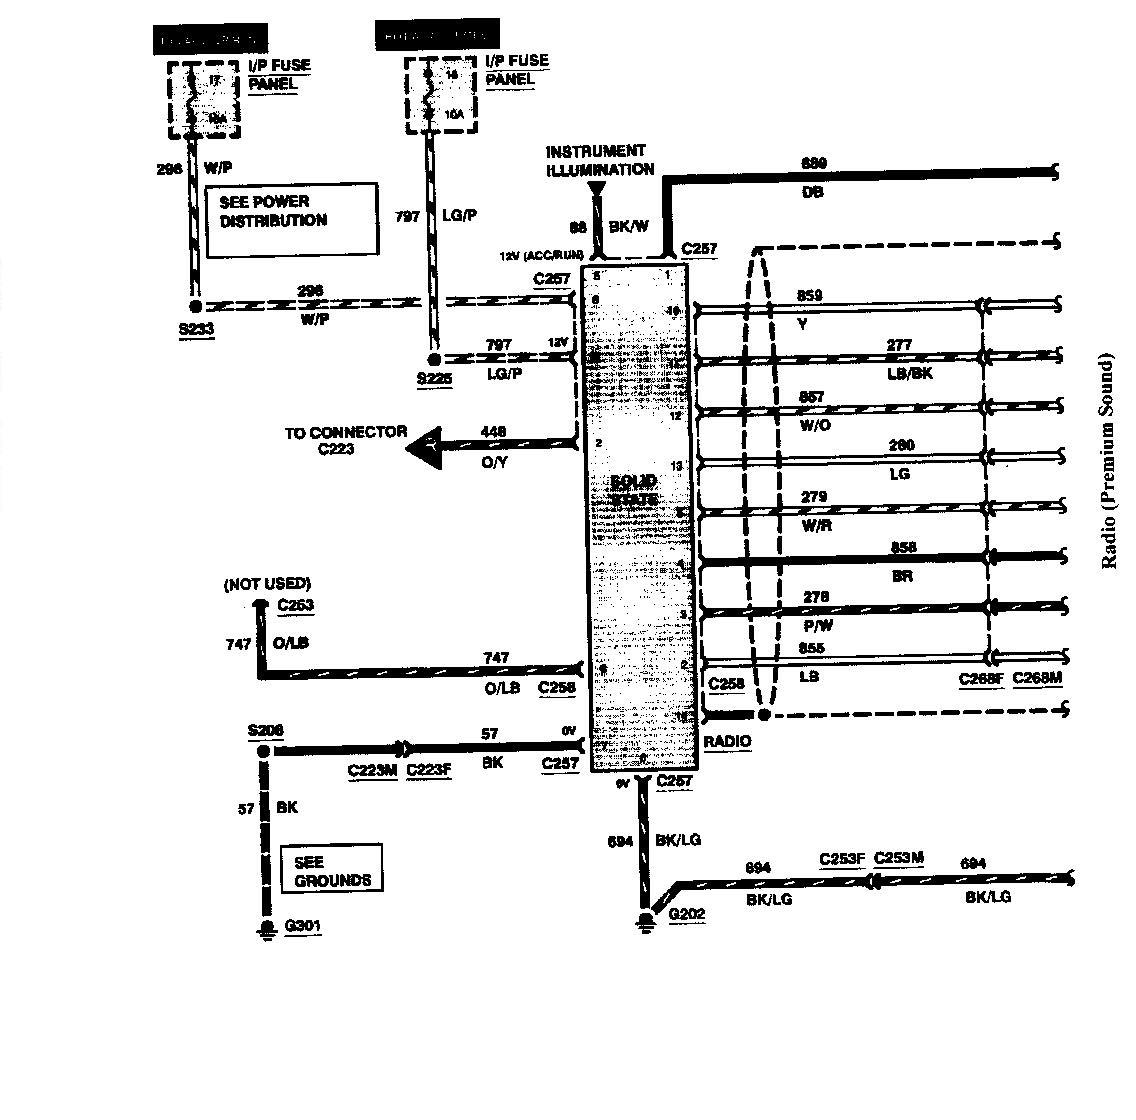 95Mark8 Premium Sound Wiring 95 mark 8 jbl wiring diagram needed lincolns online message forum 1997 lincoln town car wiring diagram at crackthecode.co